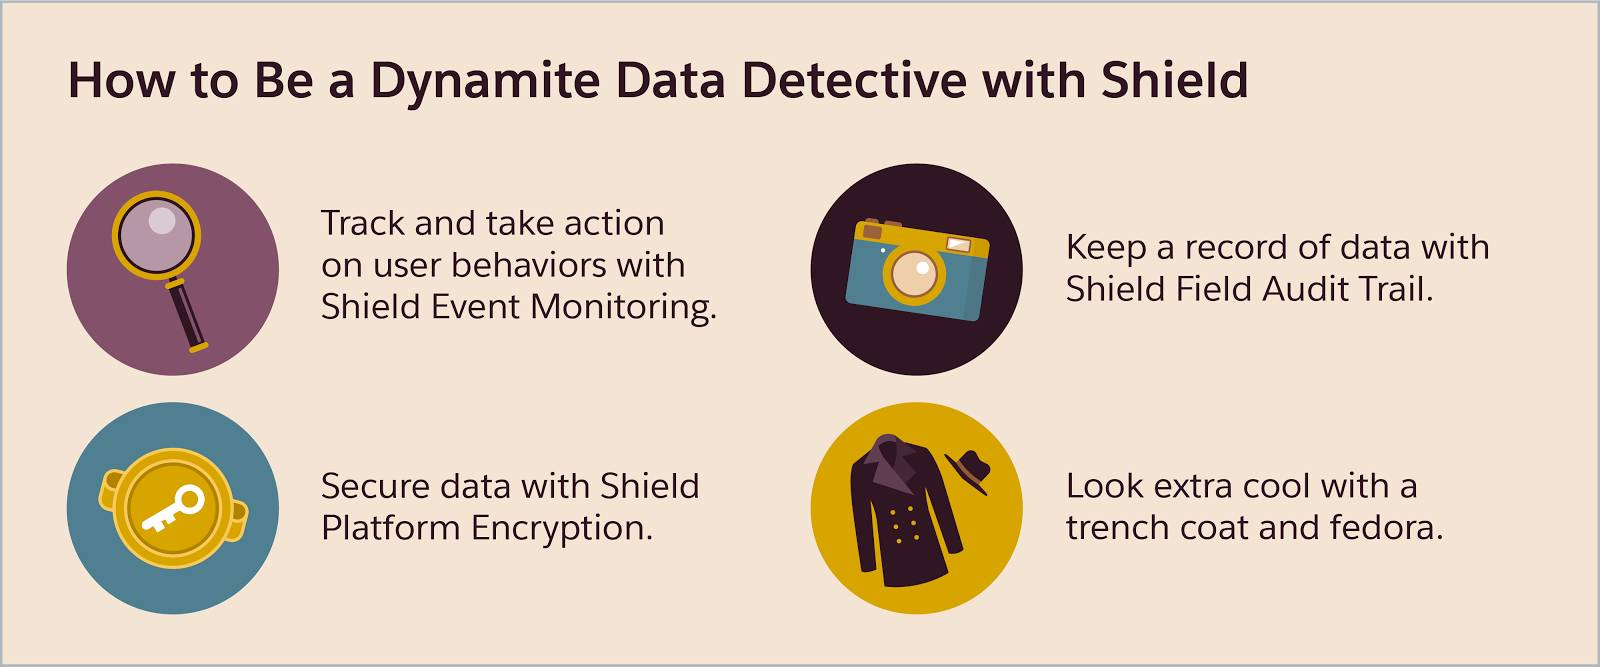 How to be a dynamite data detective with shield: Track and take action on user behaviors with Shield Event Monitoring, secure data with shield platform encryption, keep a record of data with shield field audit trail, and look extra cool with a trench coat and fedora